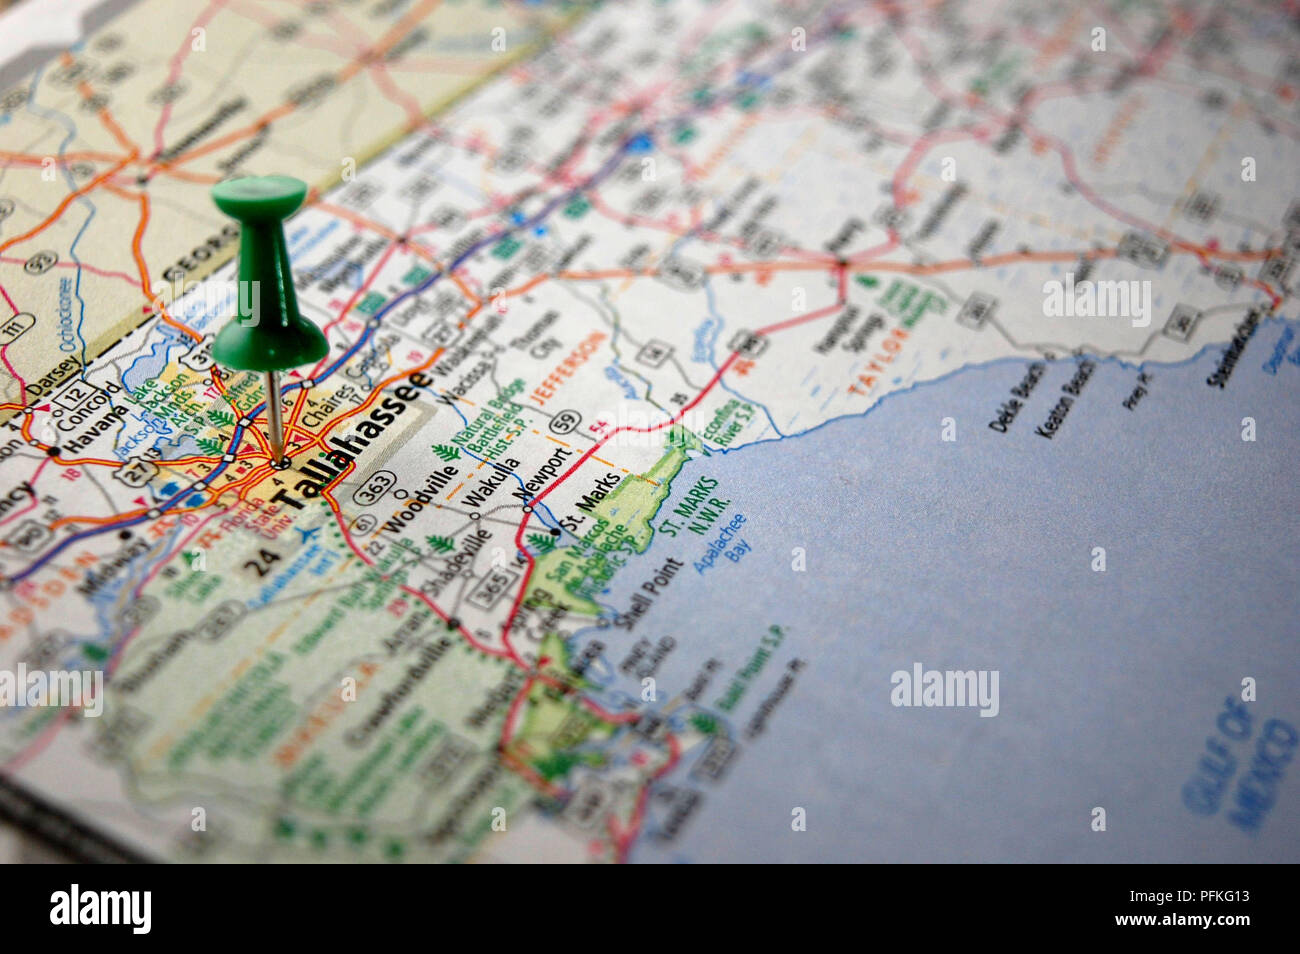 Map Of Tallahassee Florida.A Map Of Tallahassee Florida Marked With A Push Pin Stock Photo